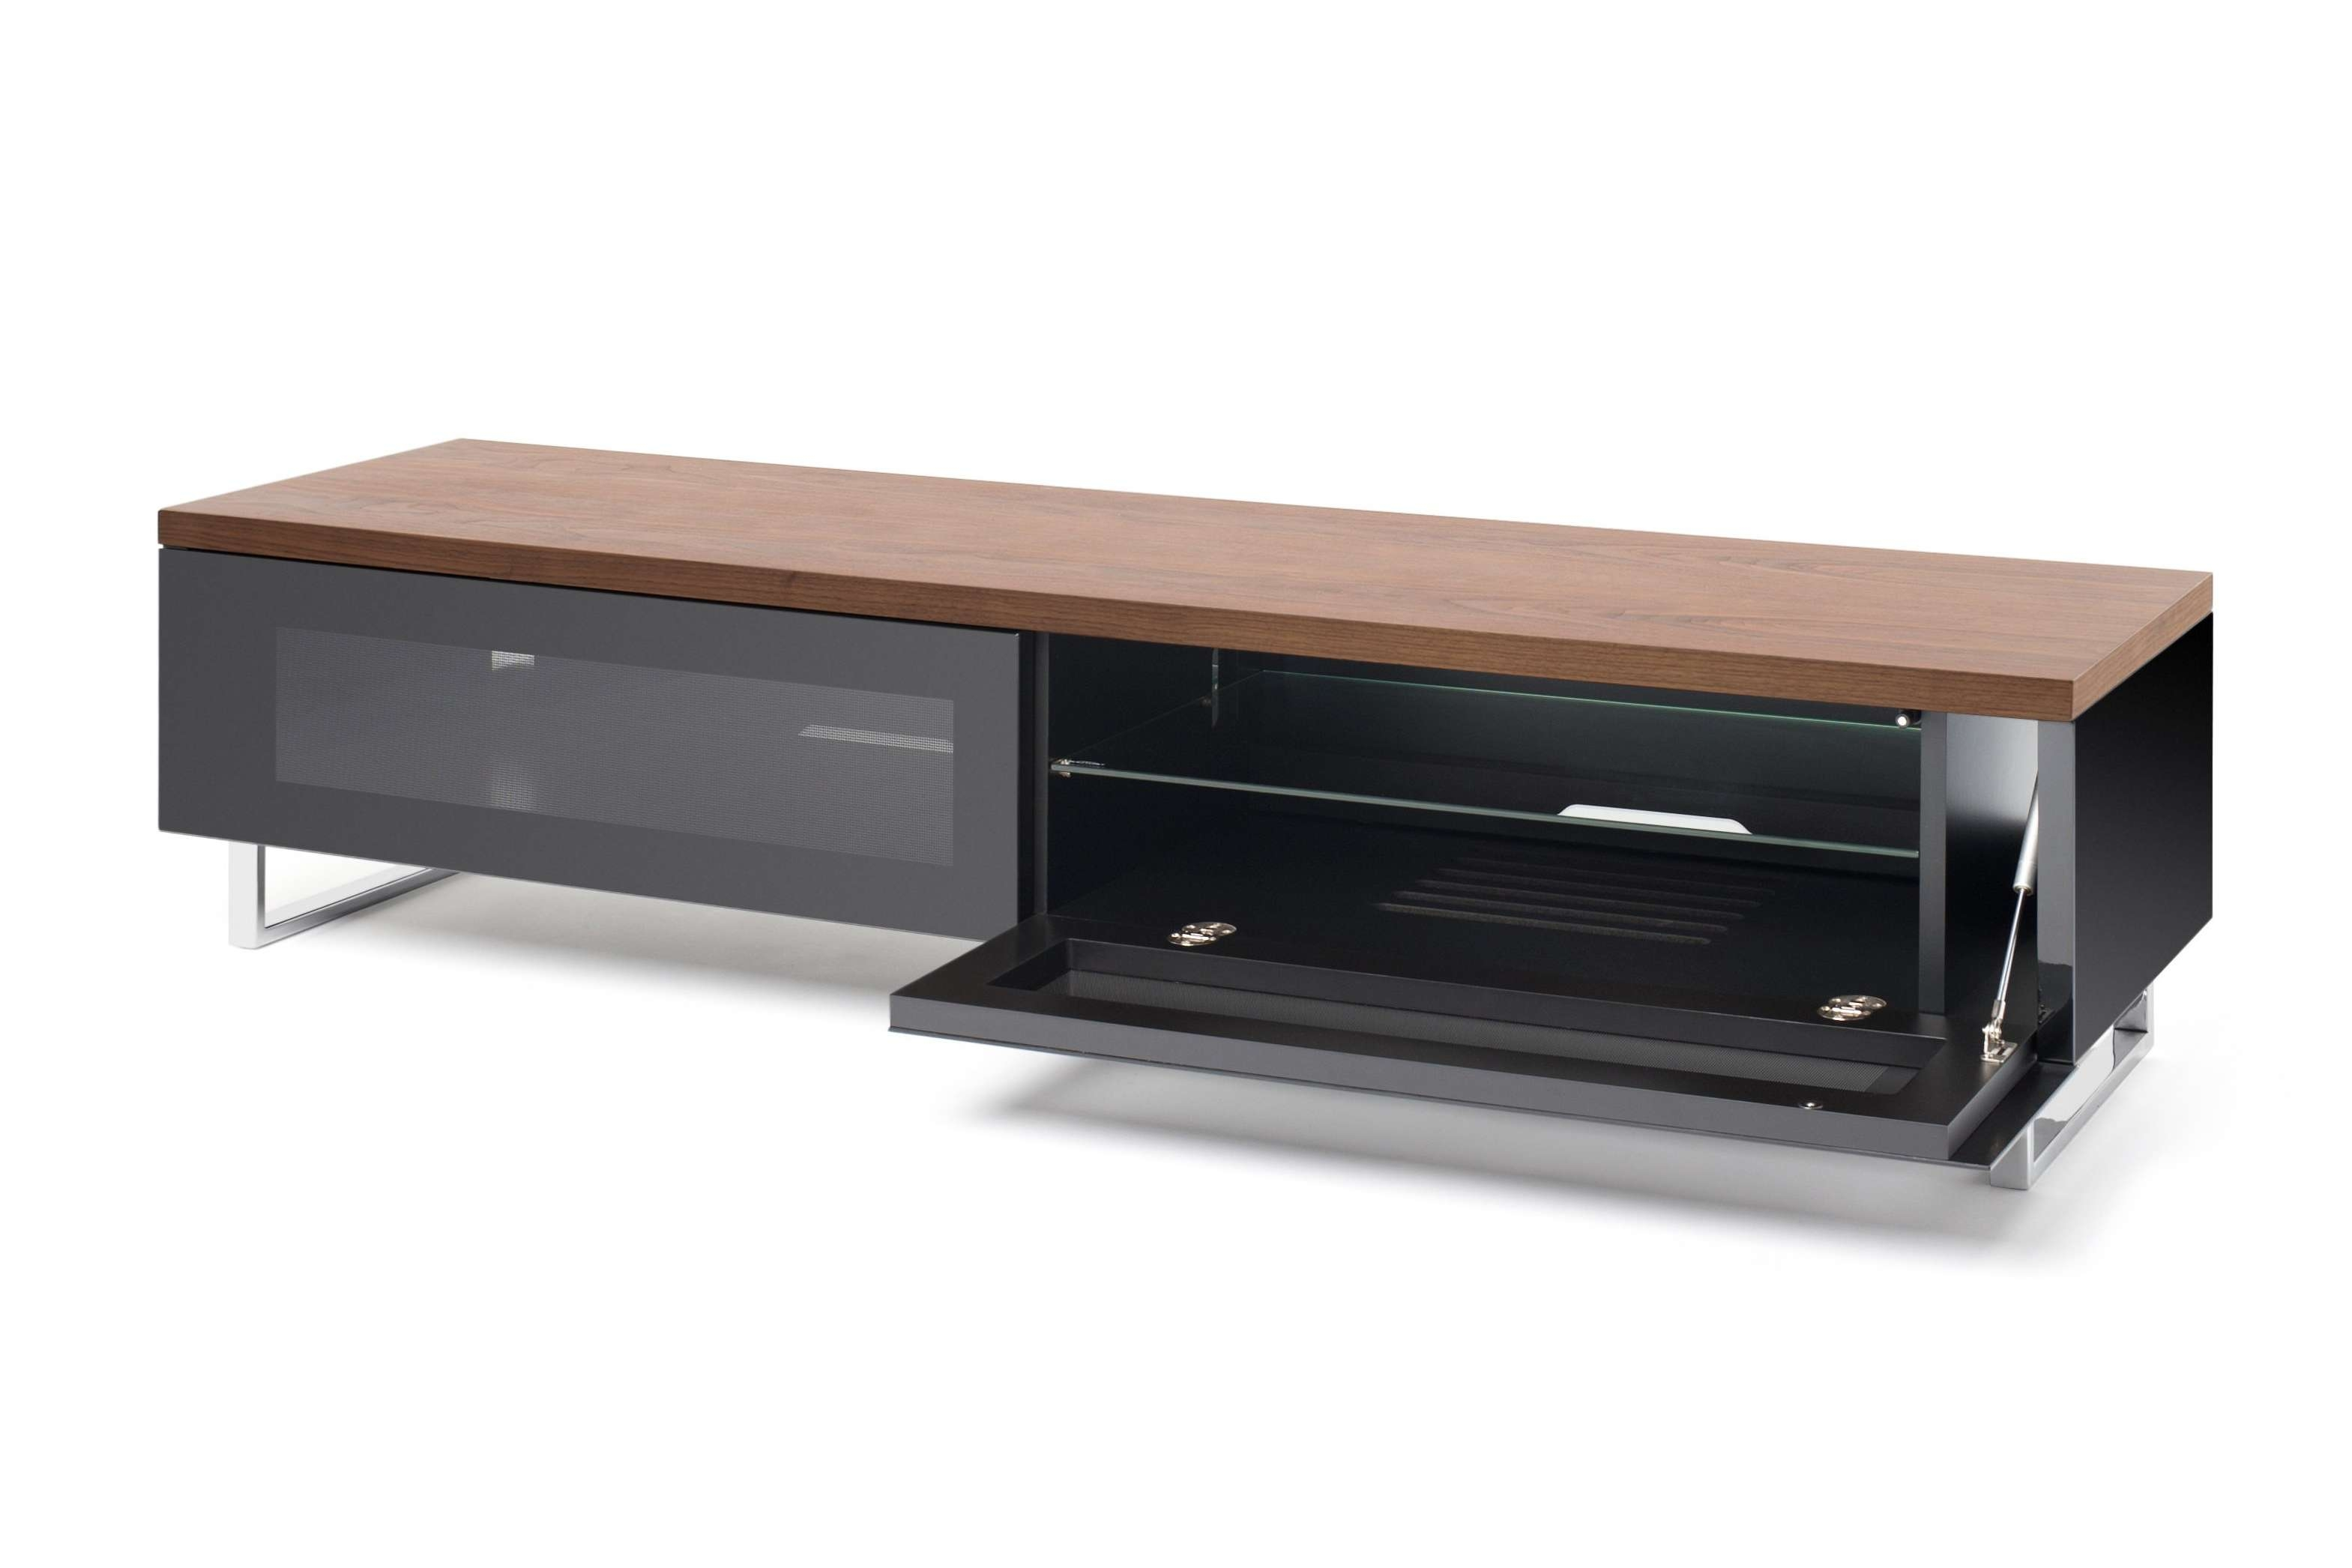 Best Modern Low Profile Tv Stand 58 About Remodel New Trends With Inside Modern Low Profile Tv Stands (View 3 of 15)